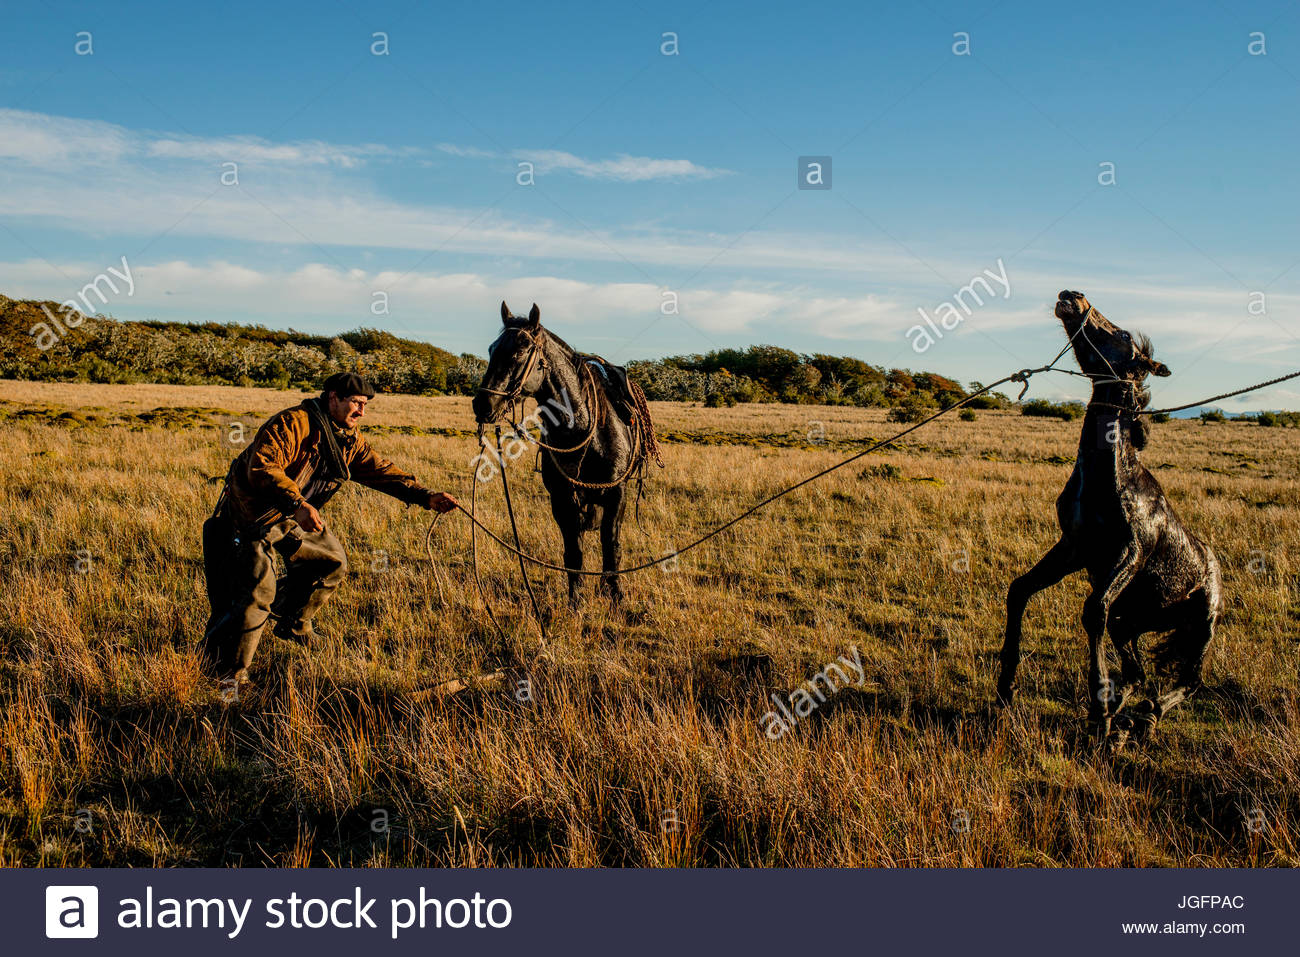 A bagualero, a cowboy who captures feral livestock, tries to take his boleadora, a throwing device with weights - Stock Image